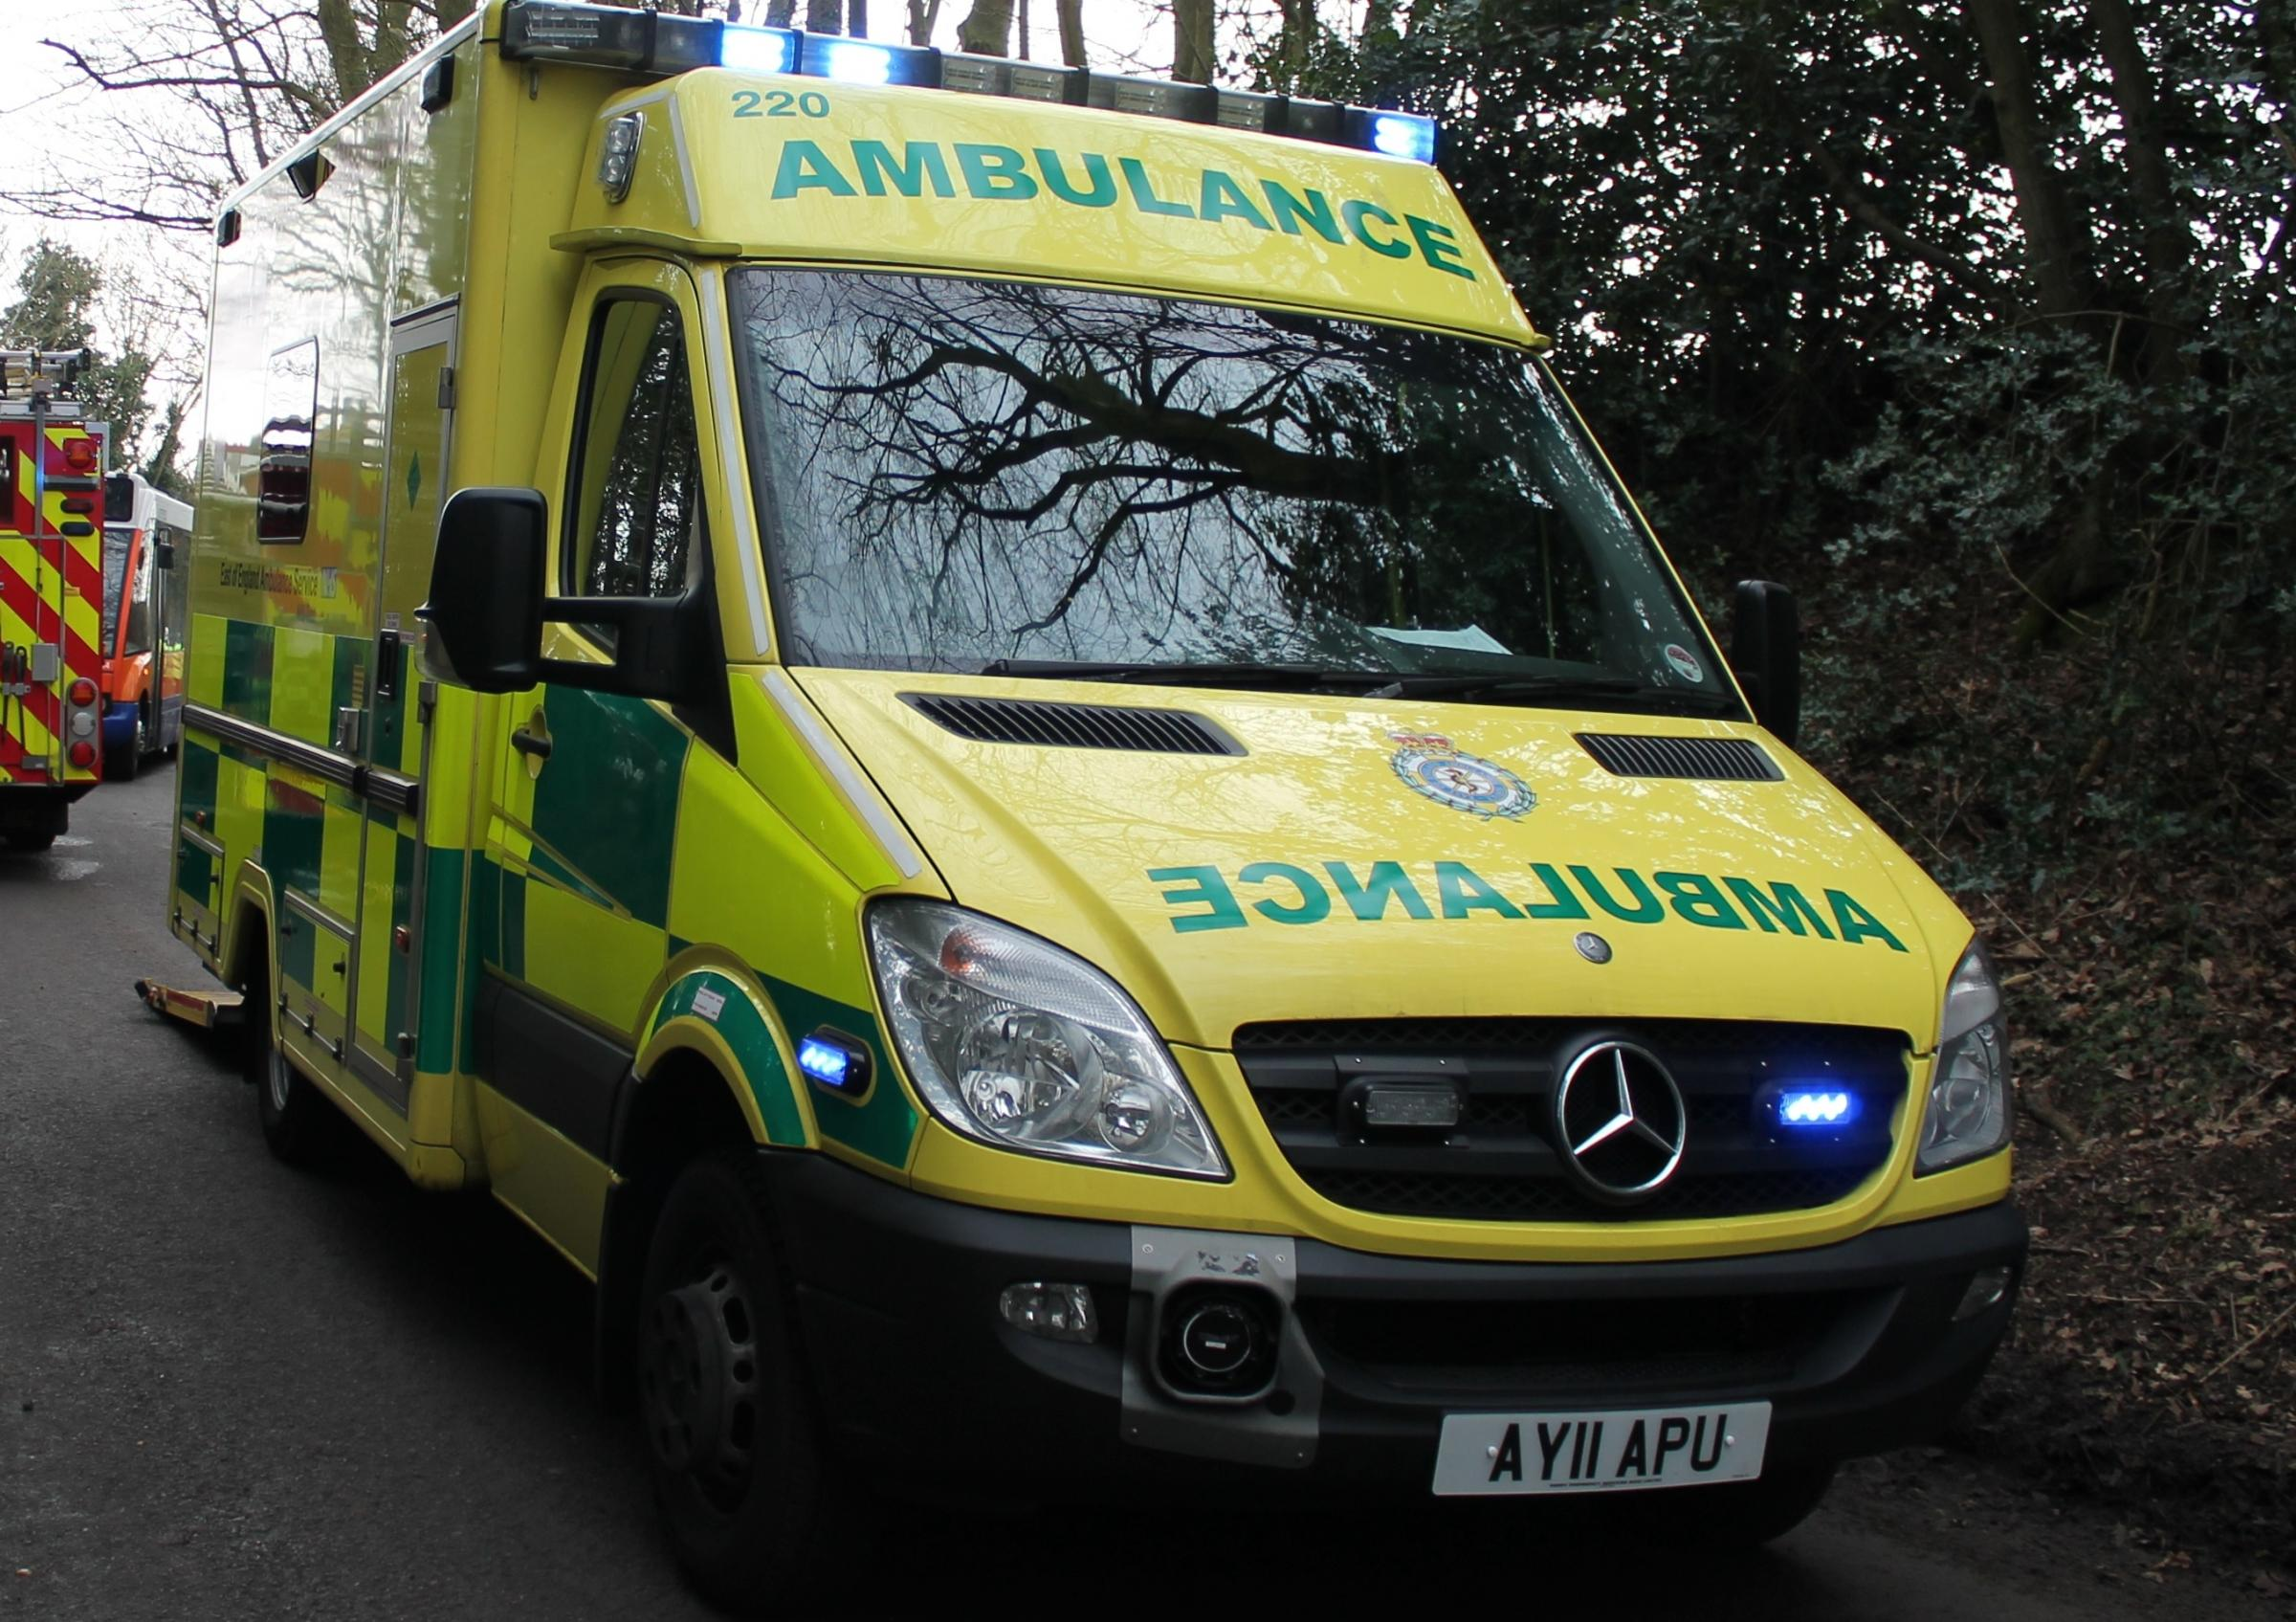 Man taken to hospital after falling from ladder